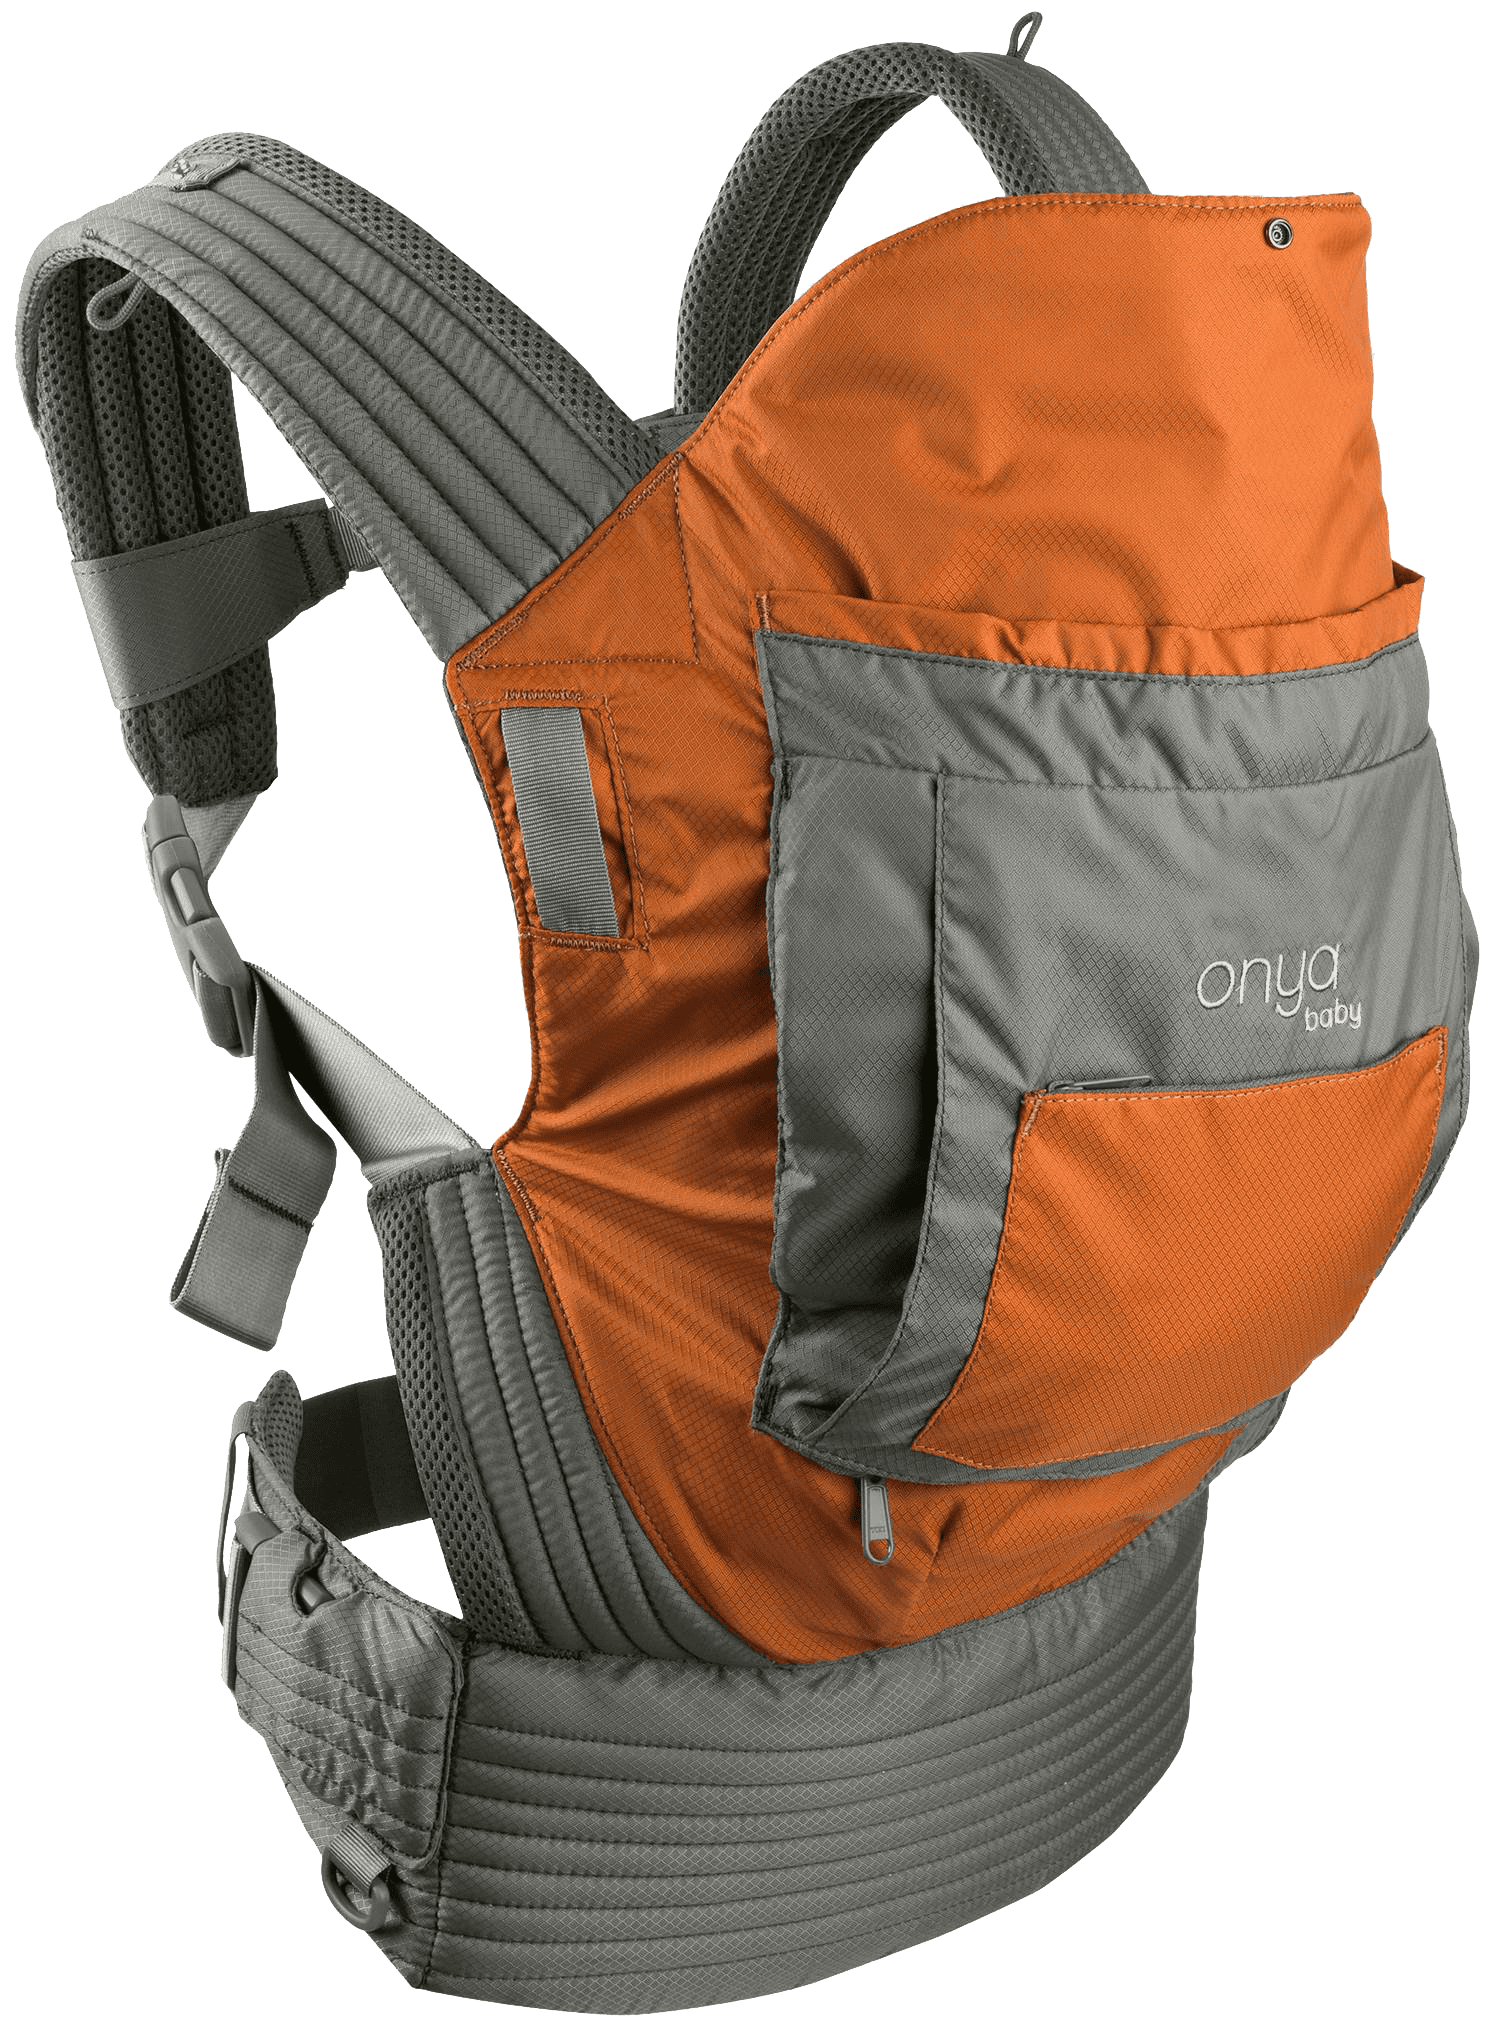 Onya Baby Outback Baby Carrier Burnt Orange Slate Grey by Onya Baby